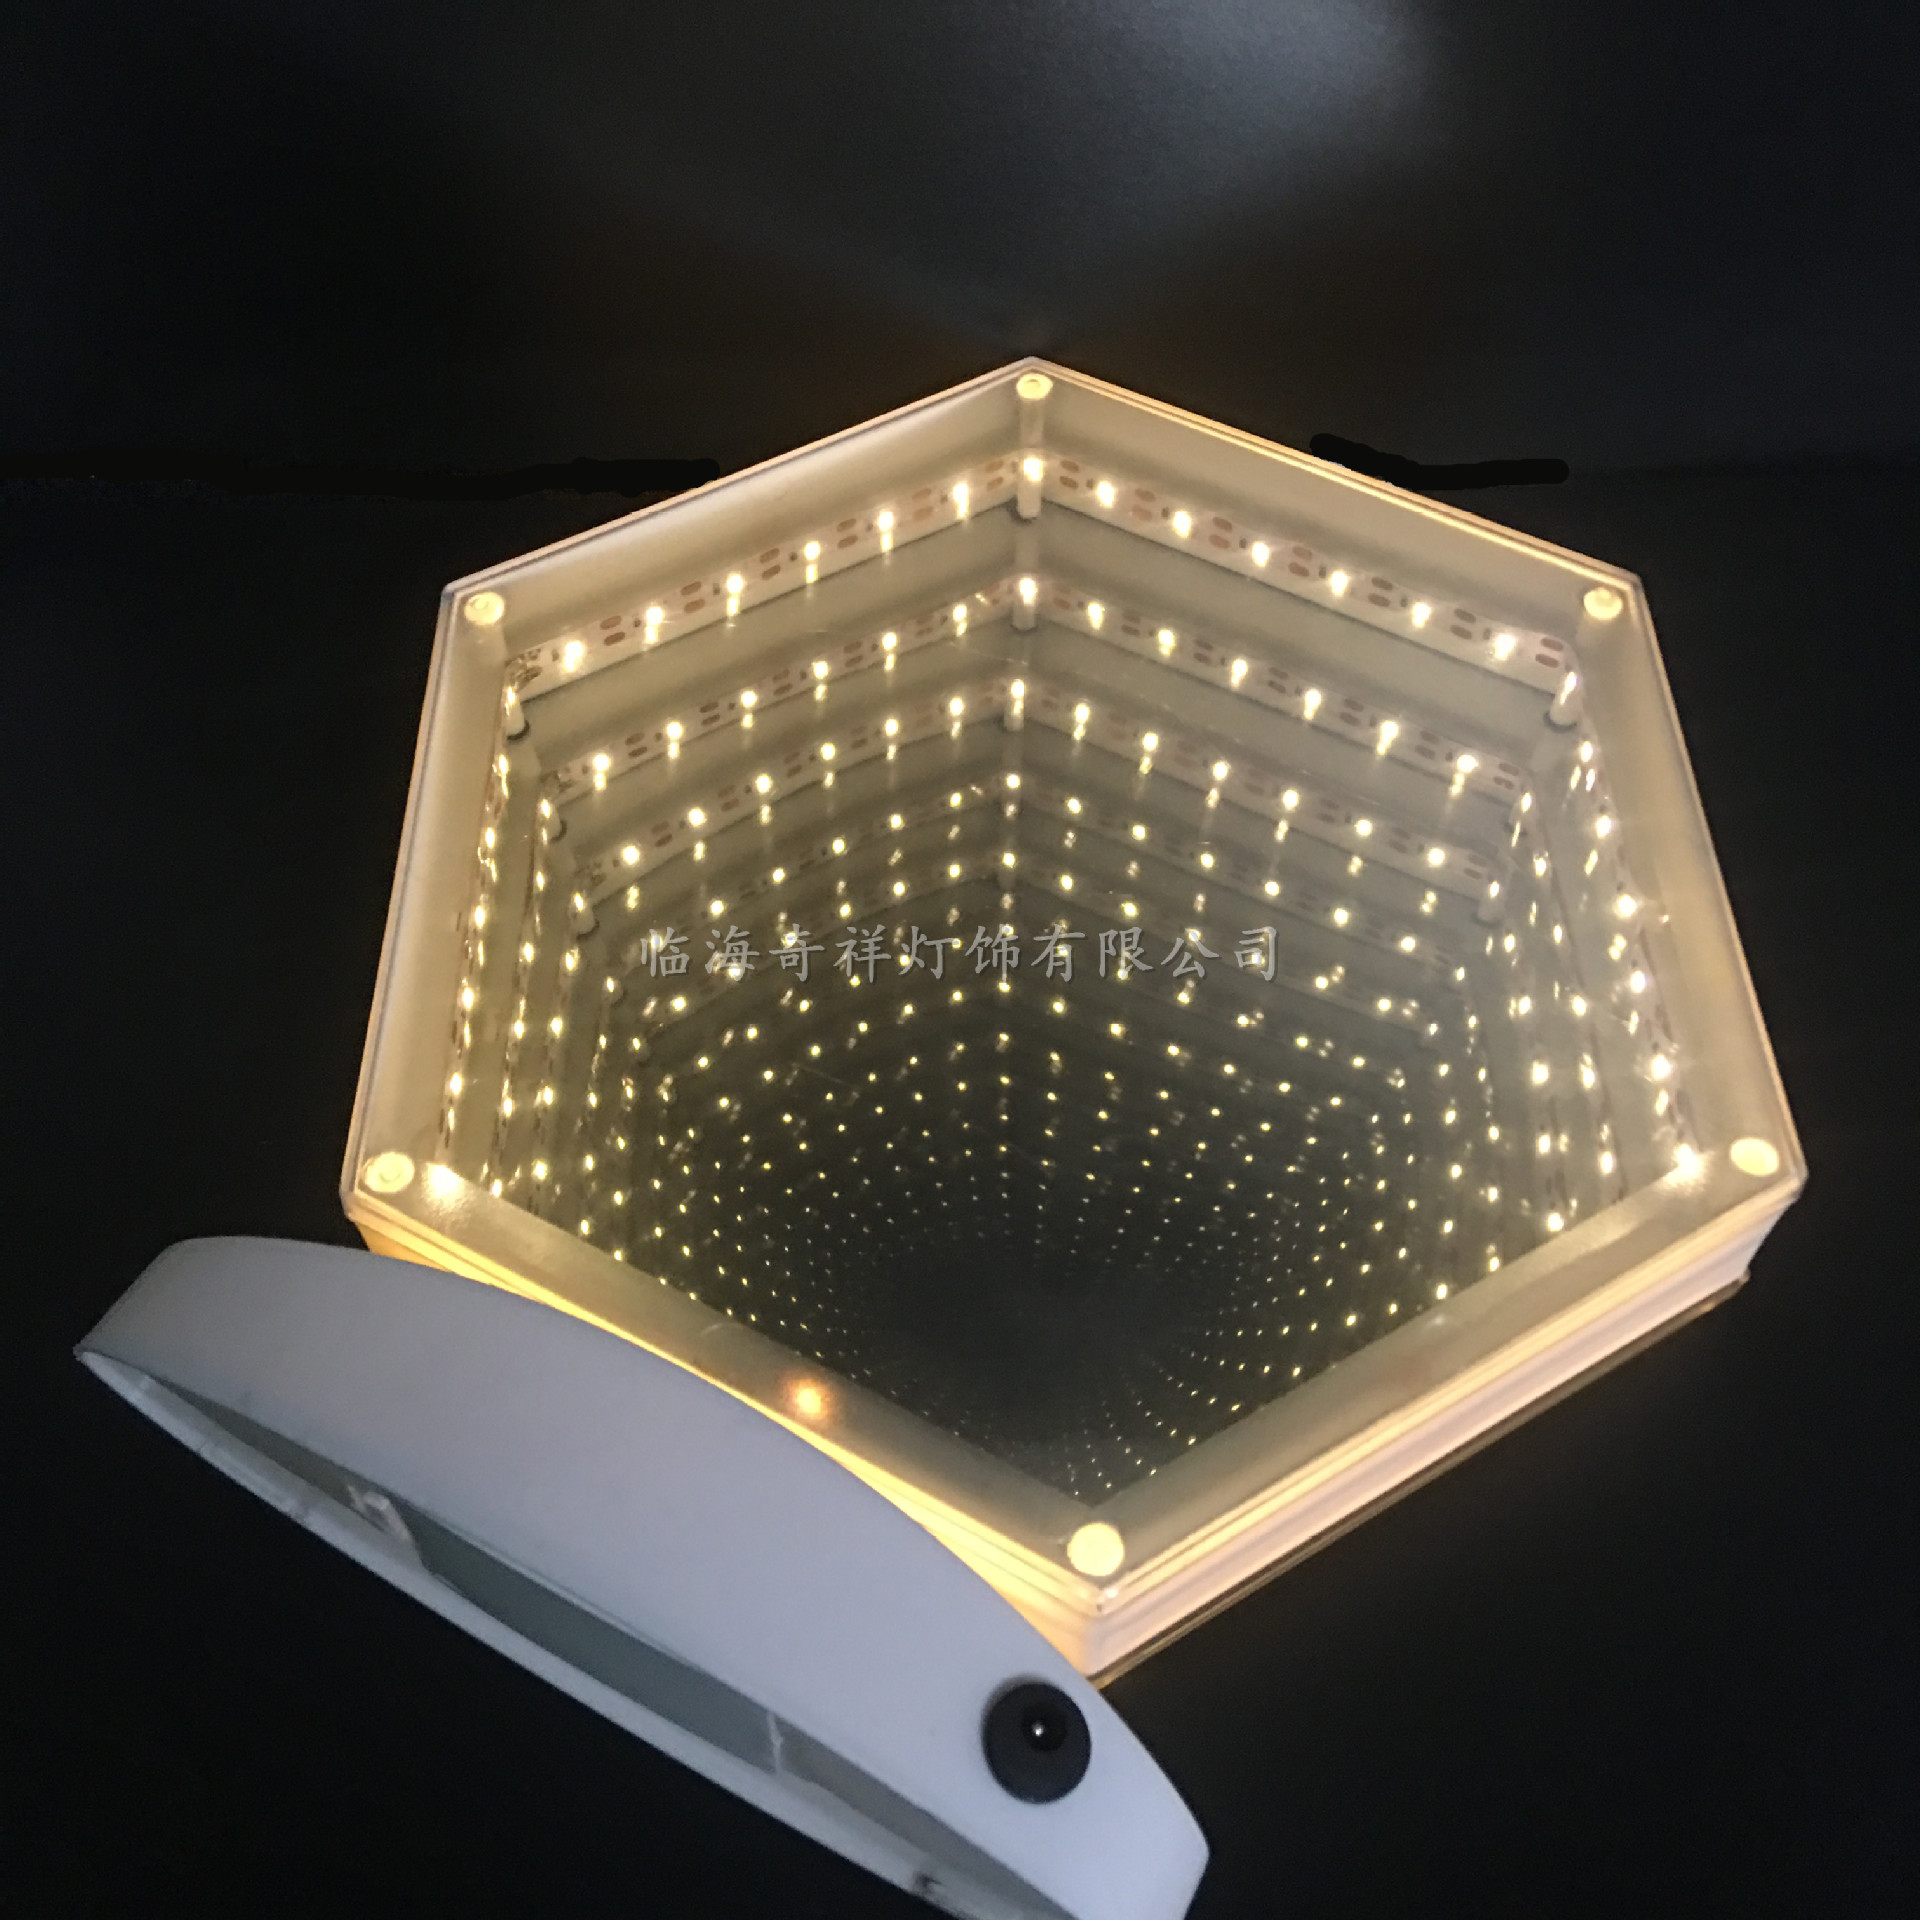 3D Hexagonal Battery USB Dual-Use Double-sided Mirror Tunnel Light Belt Base Time Dreamy Romantic Background Small Night Lamp